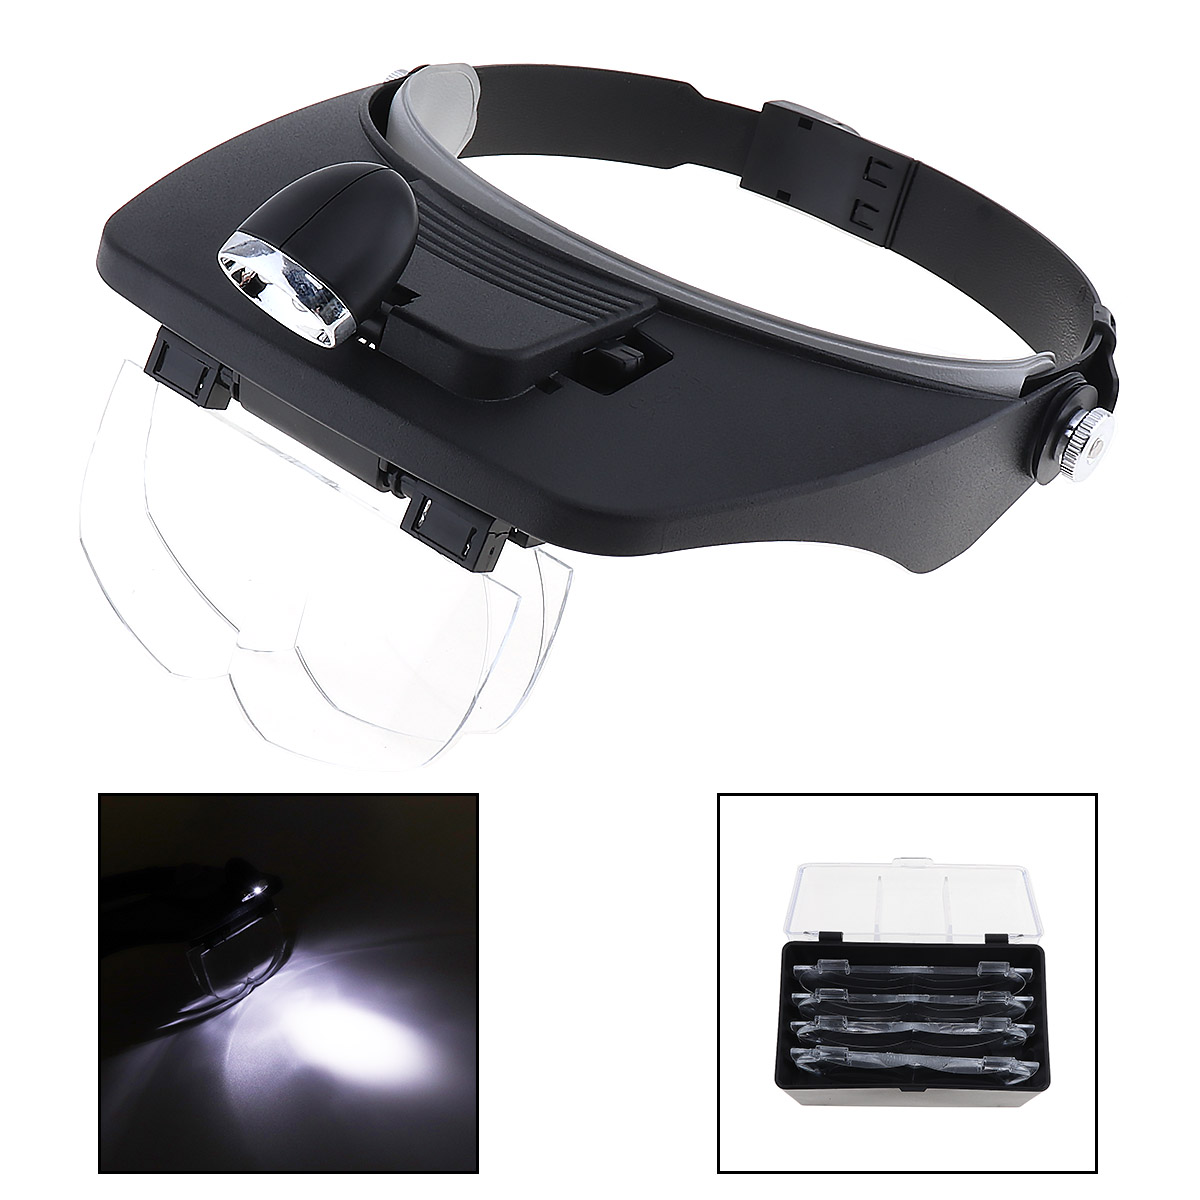 Head Magnifying Glasses with LED 10 Power Magnifier for Reading Optivisor Magnifying Glass Loupes Jewelry Watch Repair 3 Lamp new portable 45x magnifier magnifying glass with light detachable reading engraving jewelry glasses loupes